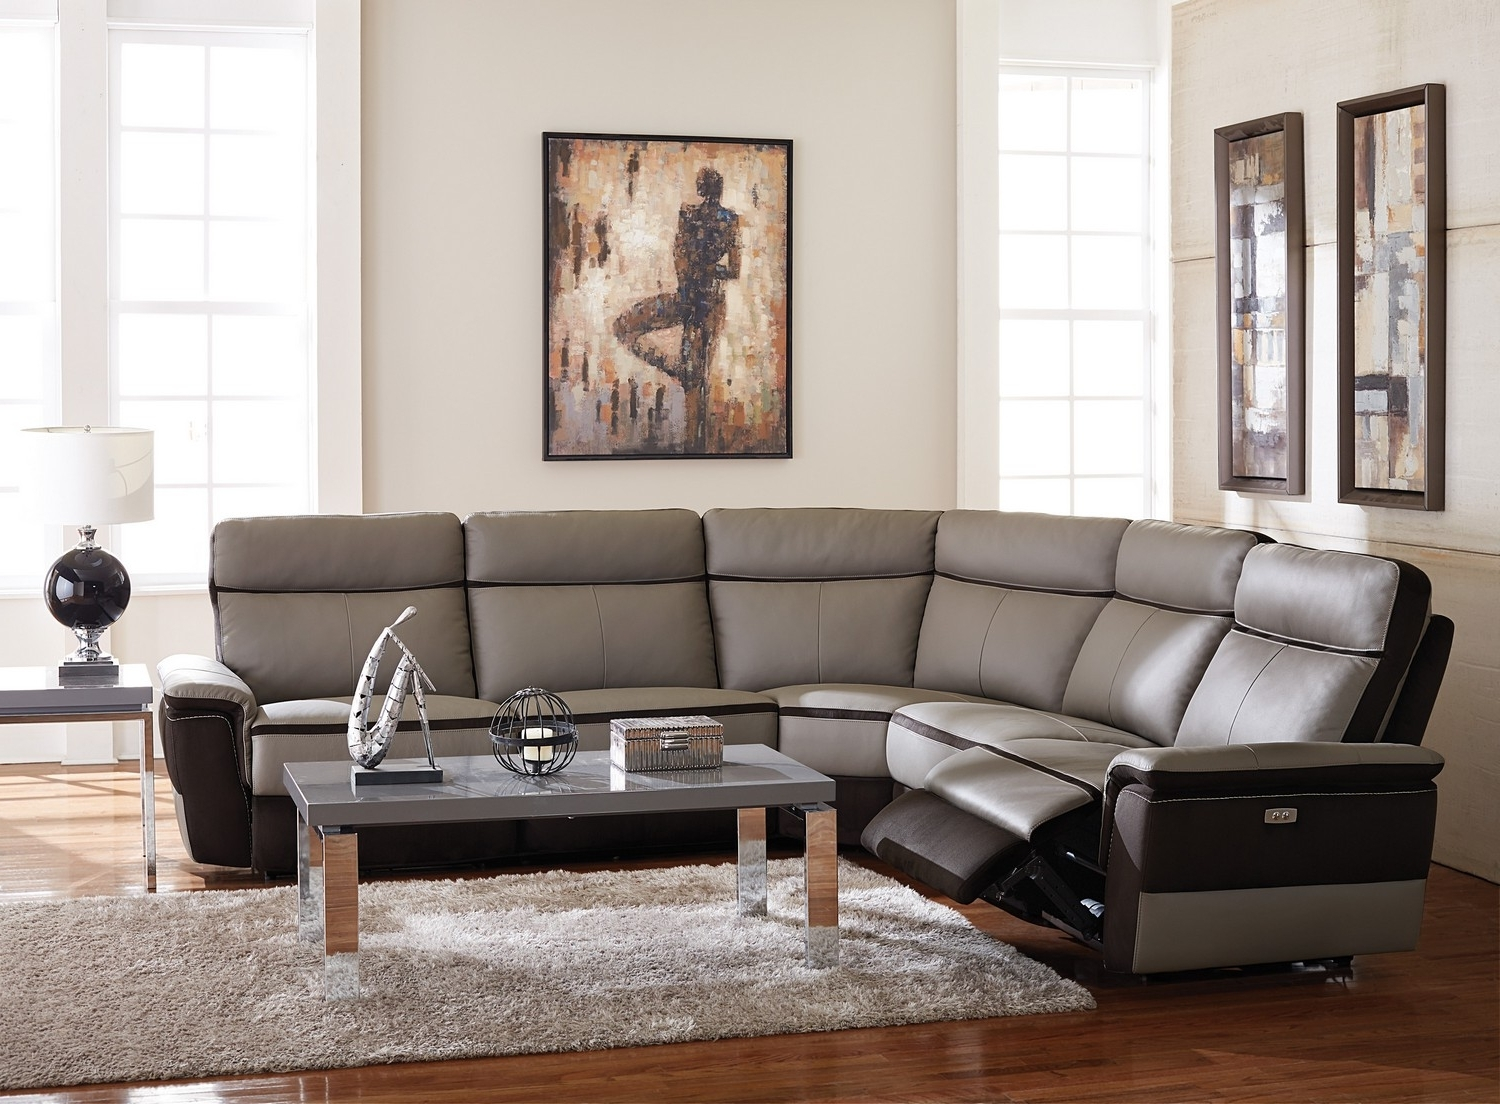 2018 Modern Reclining Sectional Oversized Sectionals With Chaise Blue Pertaining To Reclining Sectionals With Chaise (View 1 of 15)